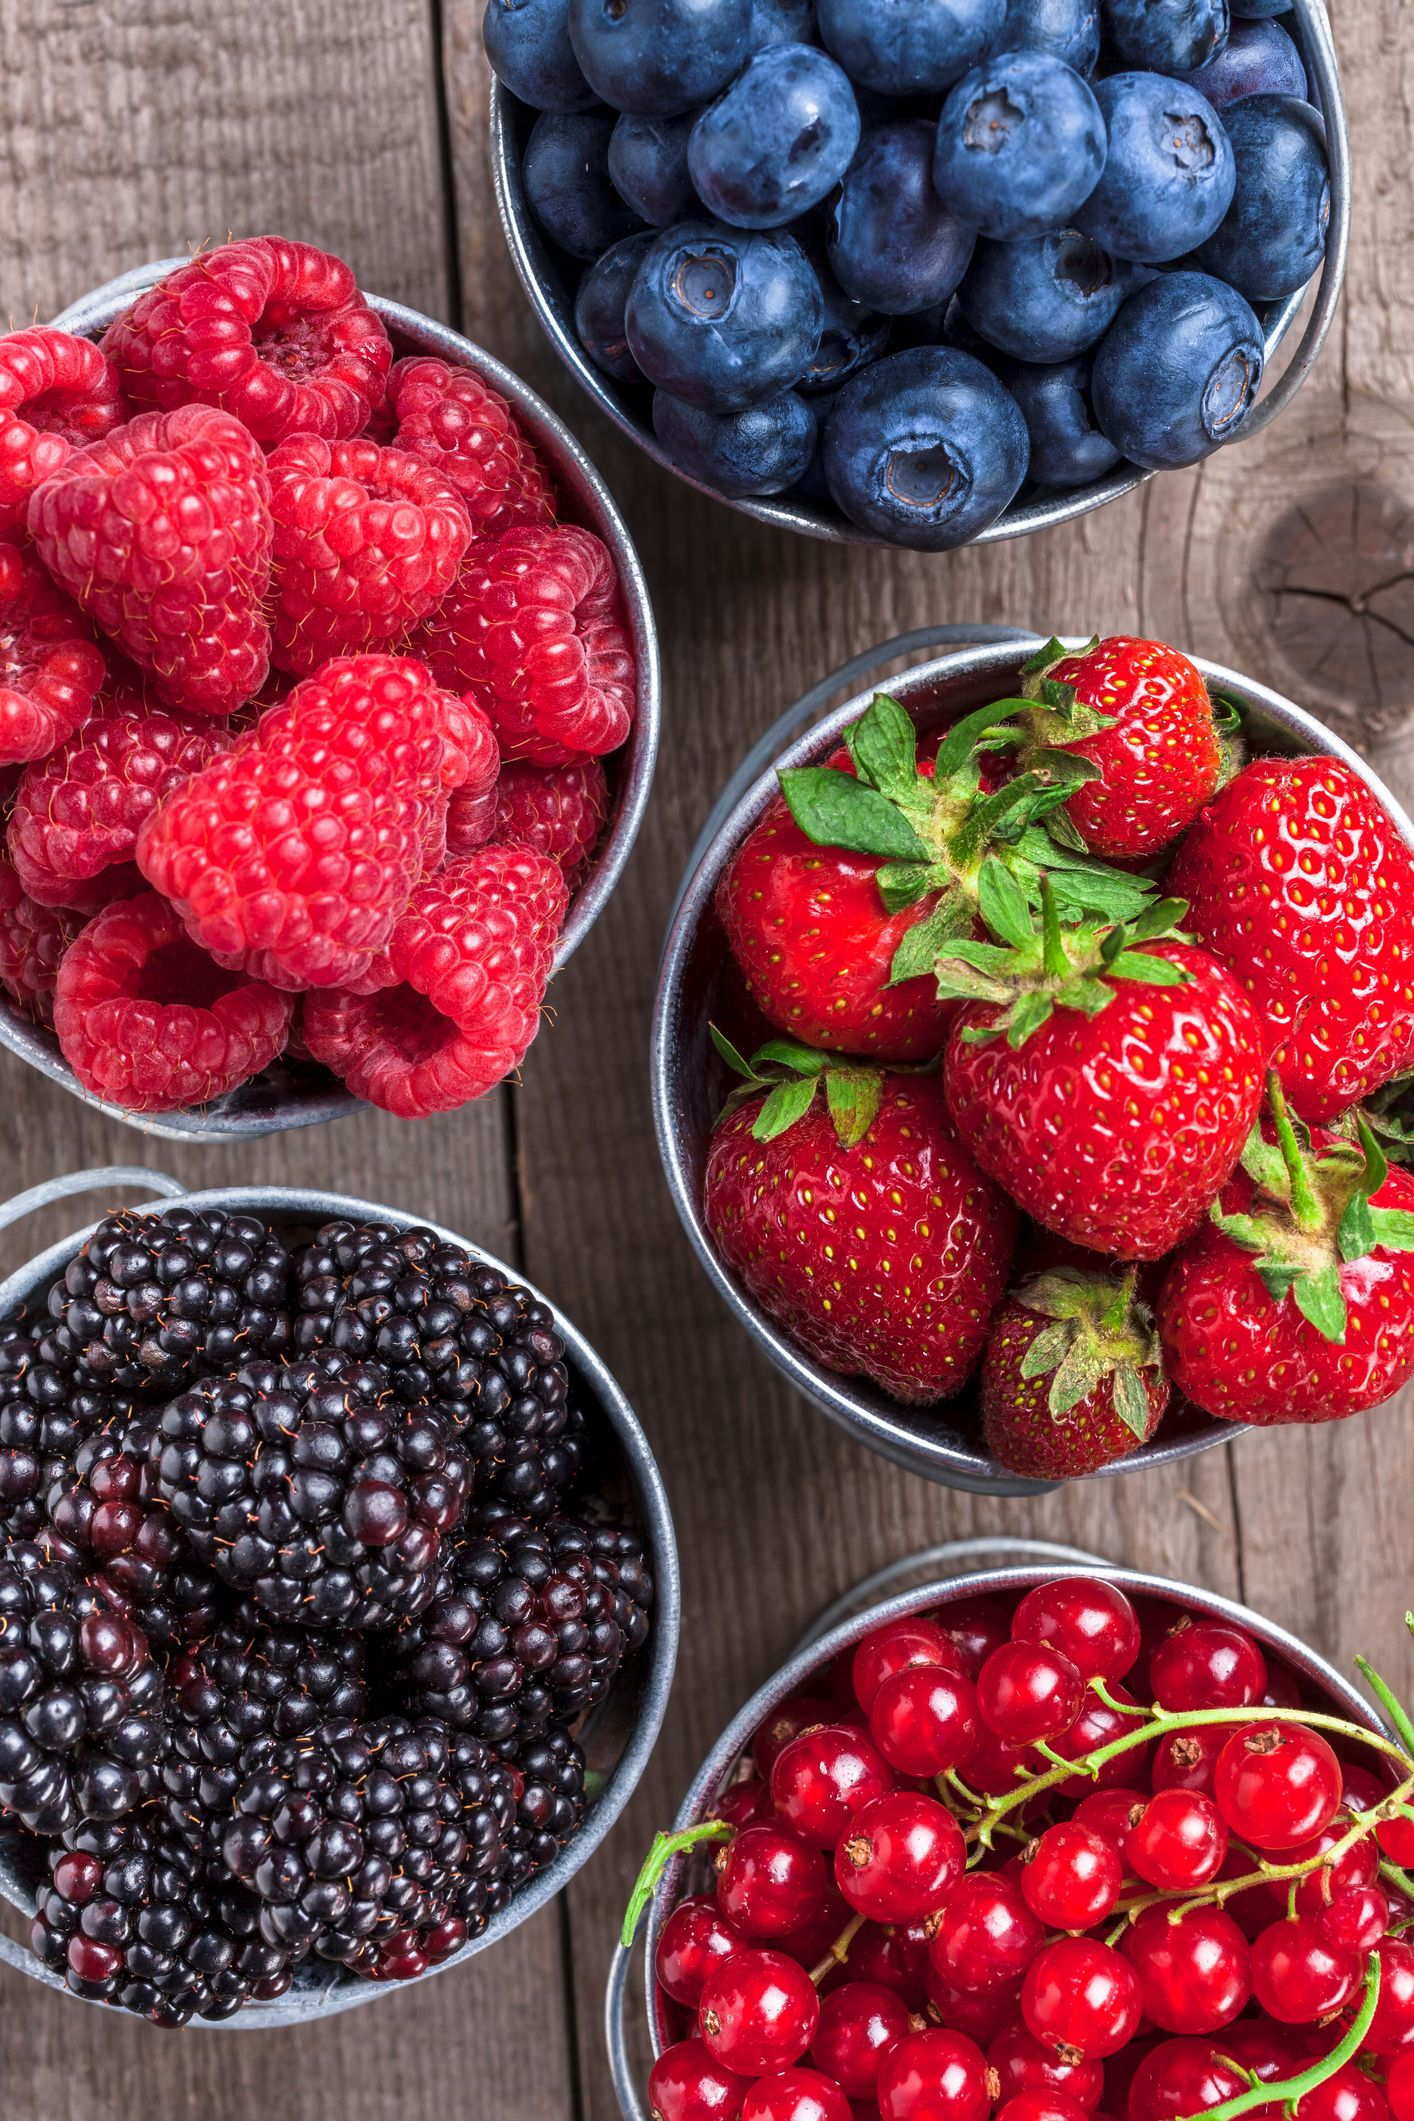 Best fruits for burning fat